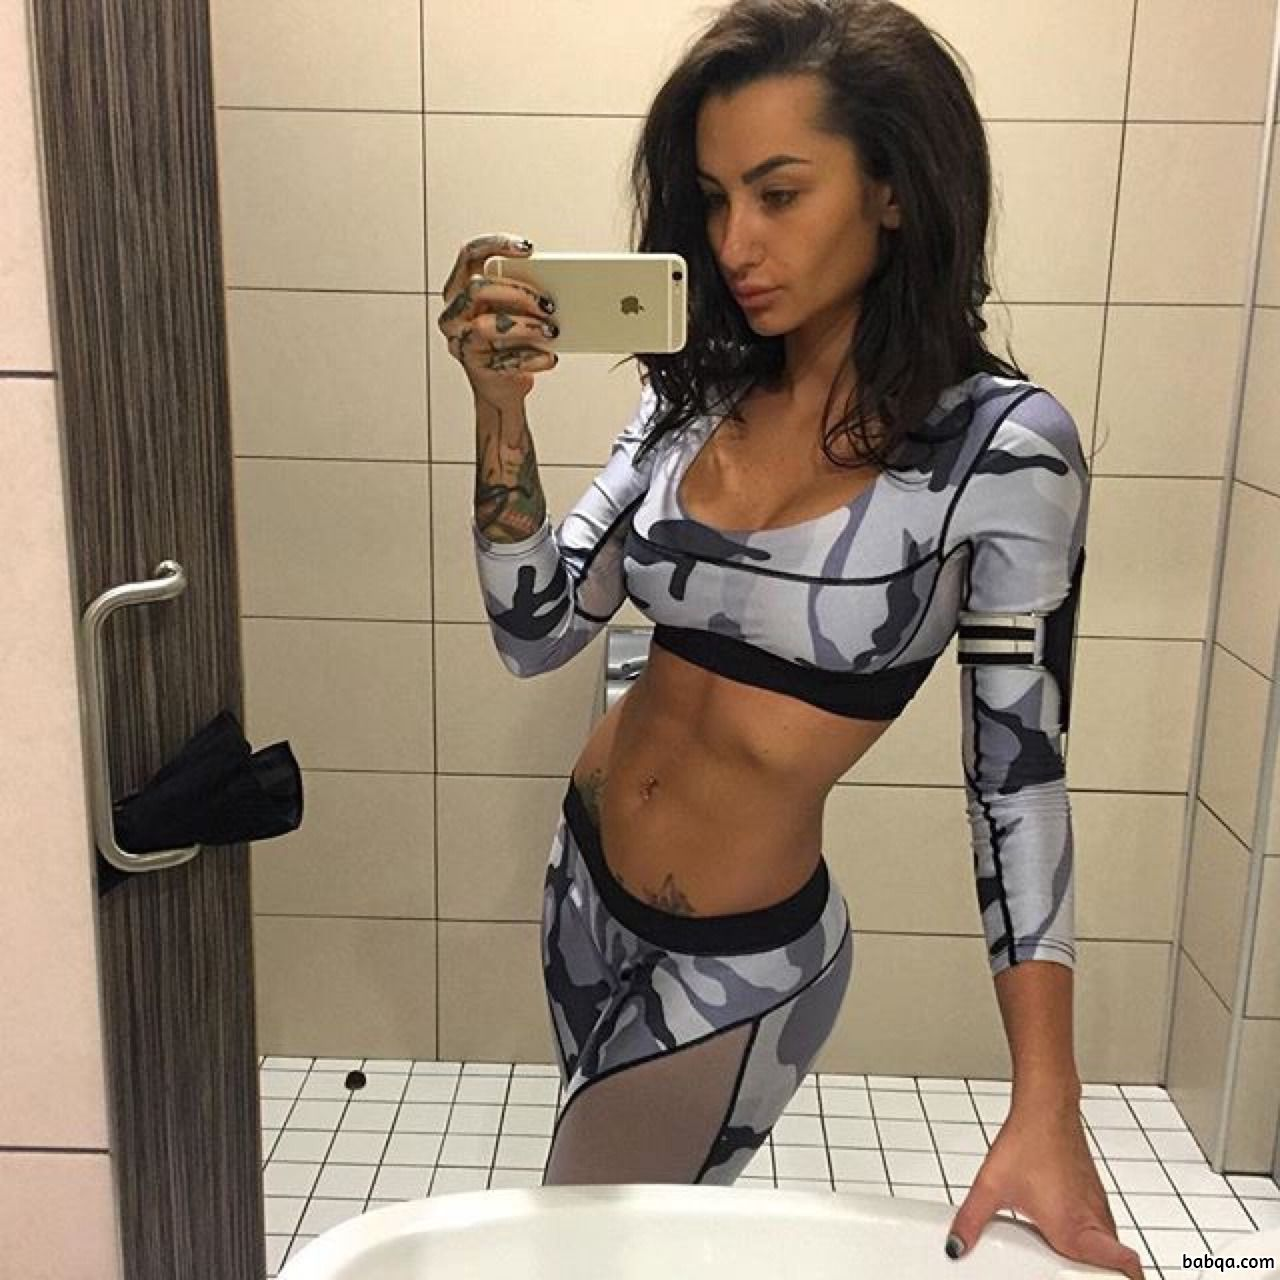 perfection girls repost from womenfitnessmodels – sexy girl with tits